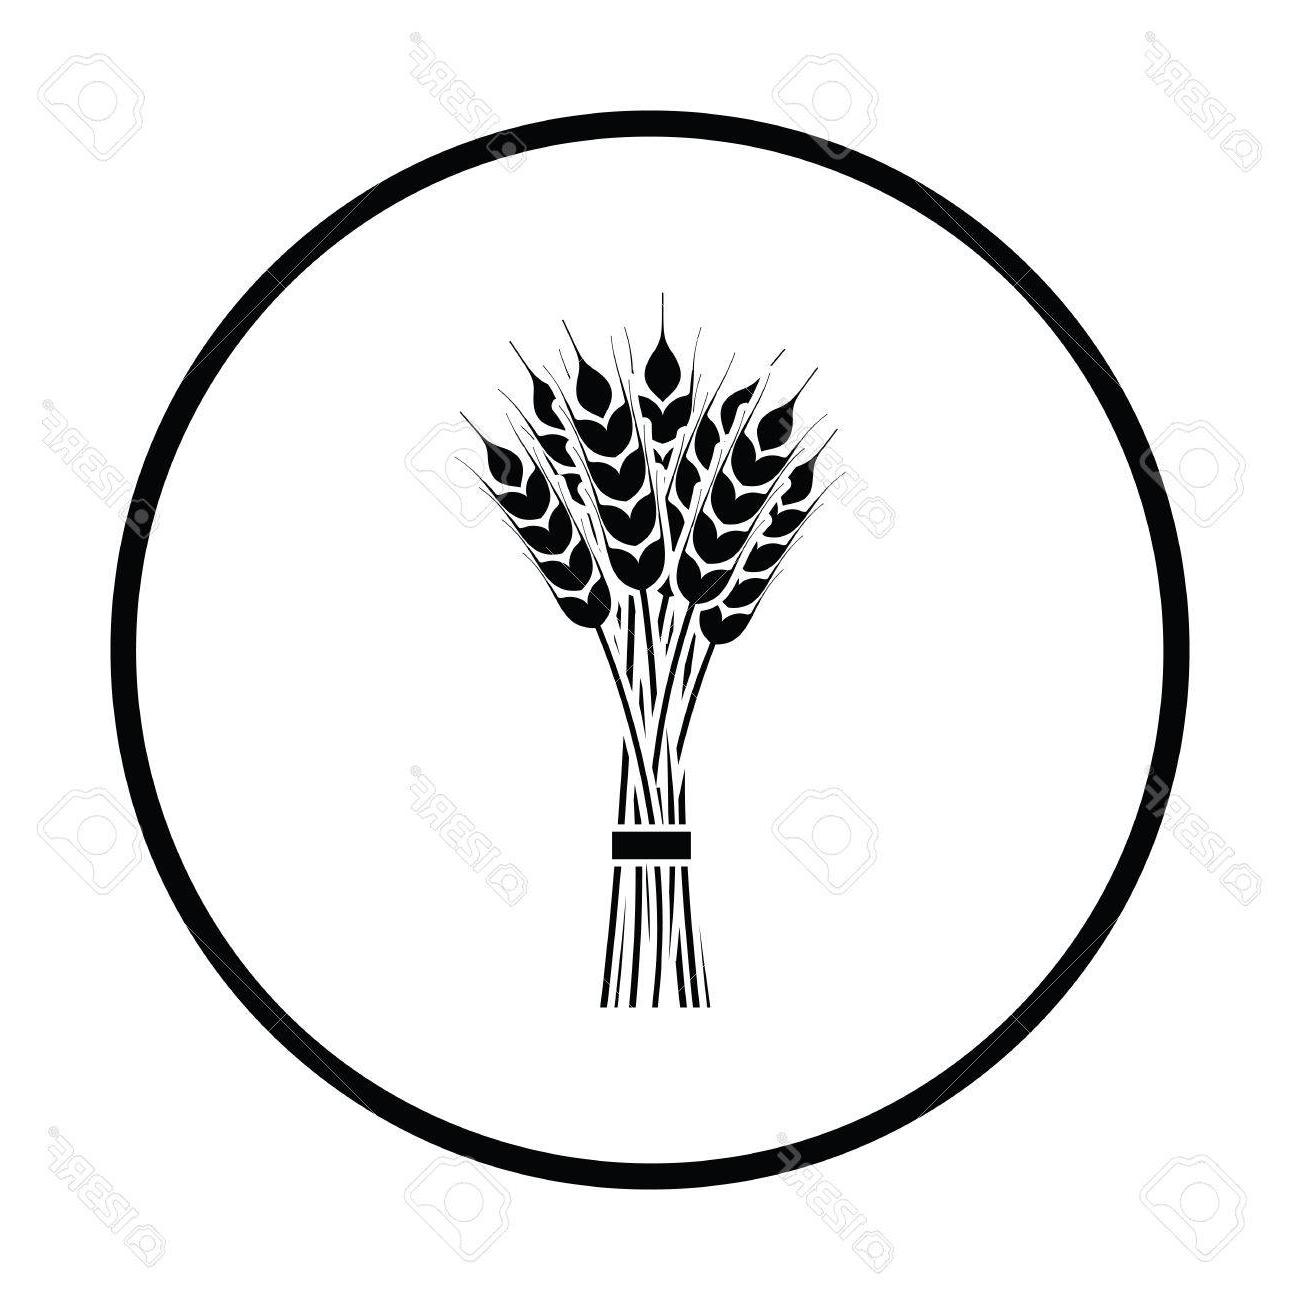 Wheat bundle clipart vector free download Best Wheat Bundle Black And White Vector Design » Free ... vector free download